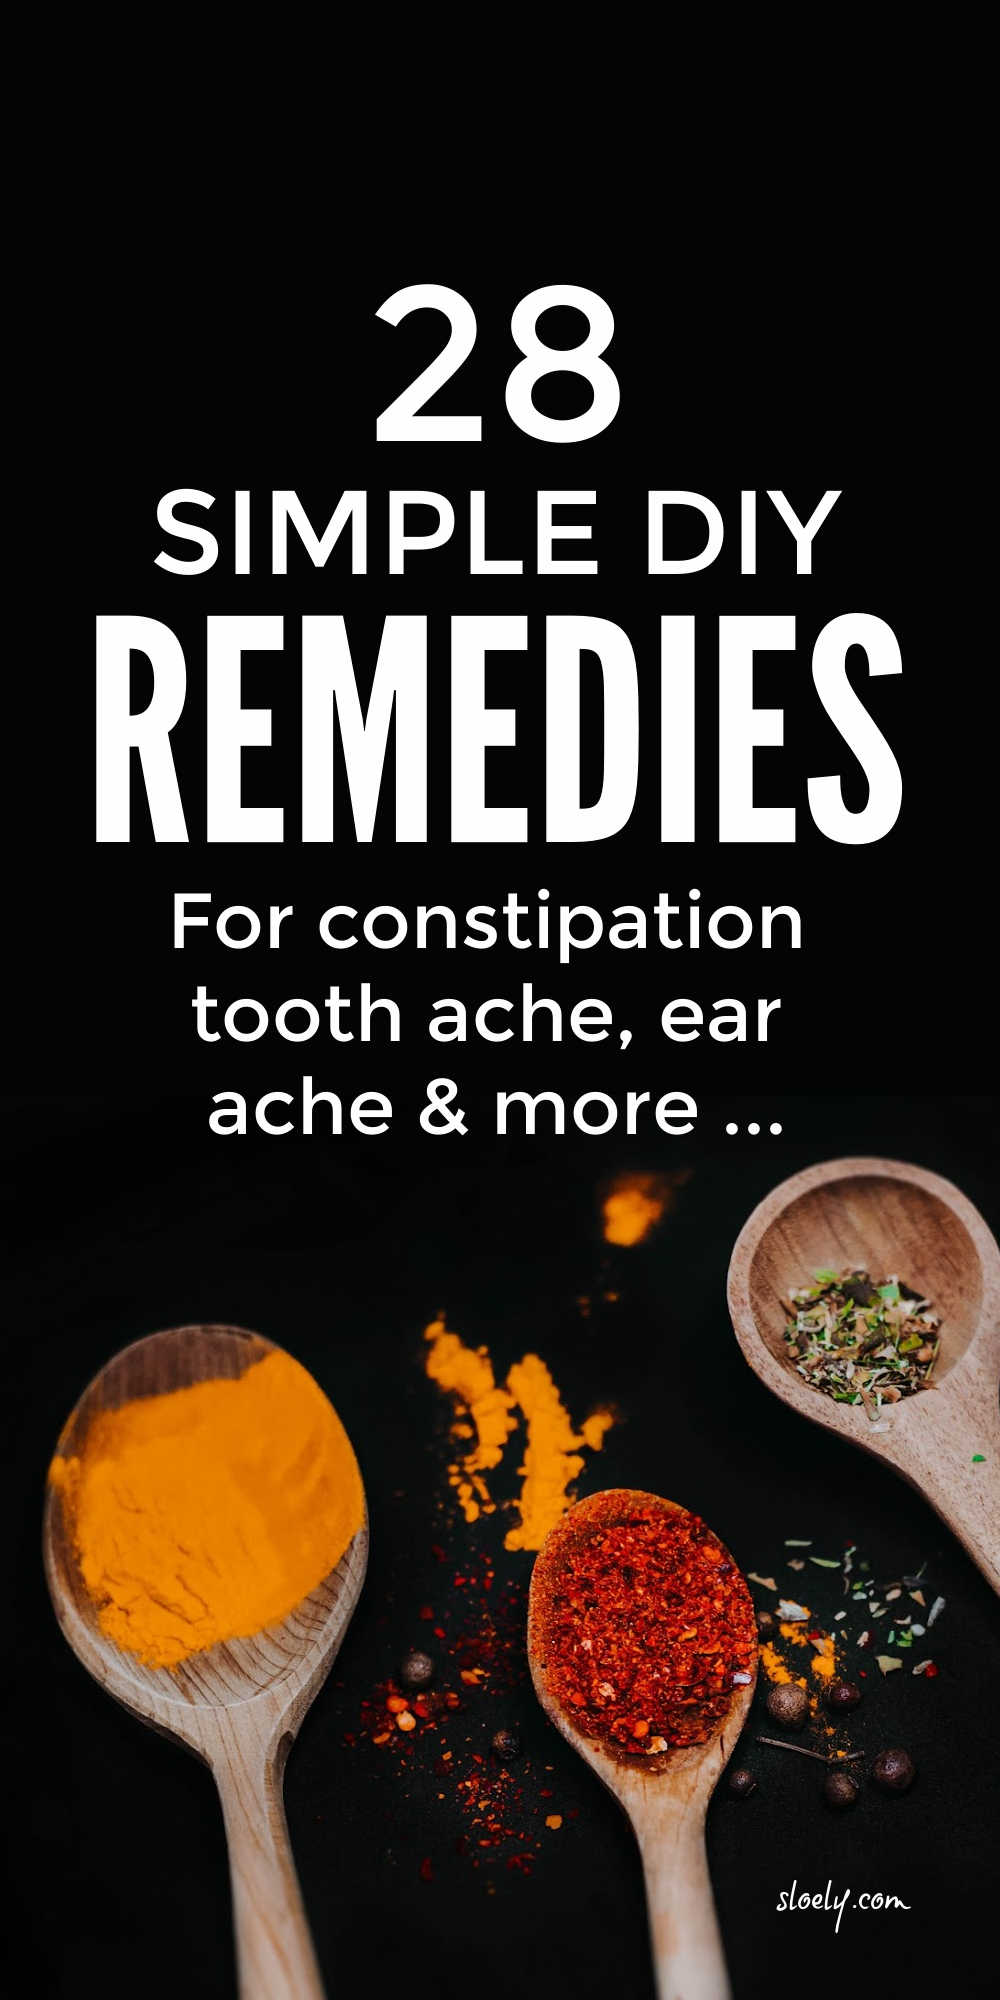 Simple DIY Health Remedies